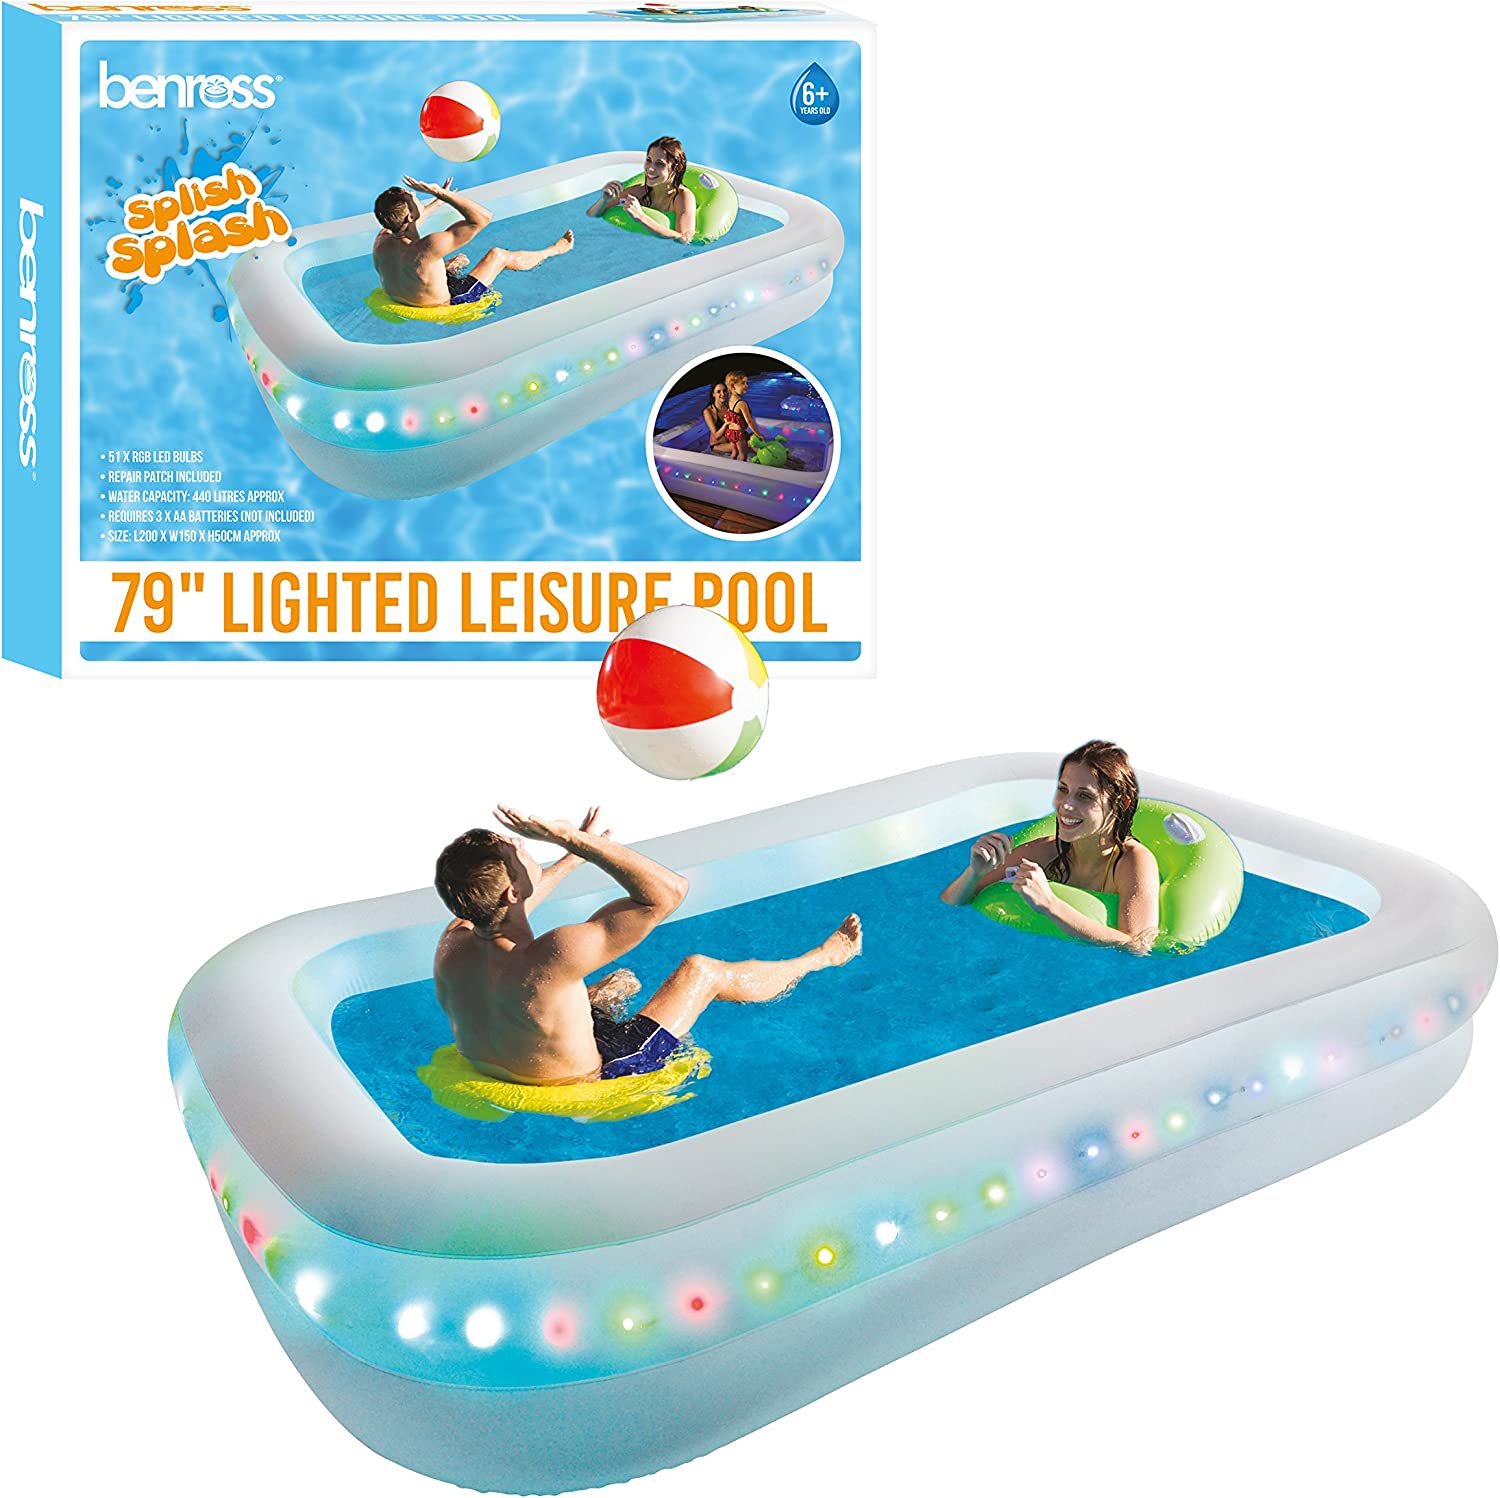 Benross 84520 - Piscina Hinchable con luz LED, Funciona con Pilas, Transparente: Amazon.es: Jardín